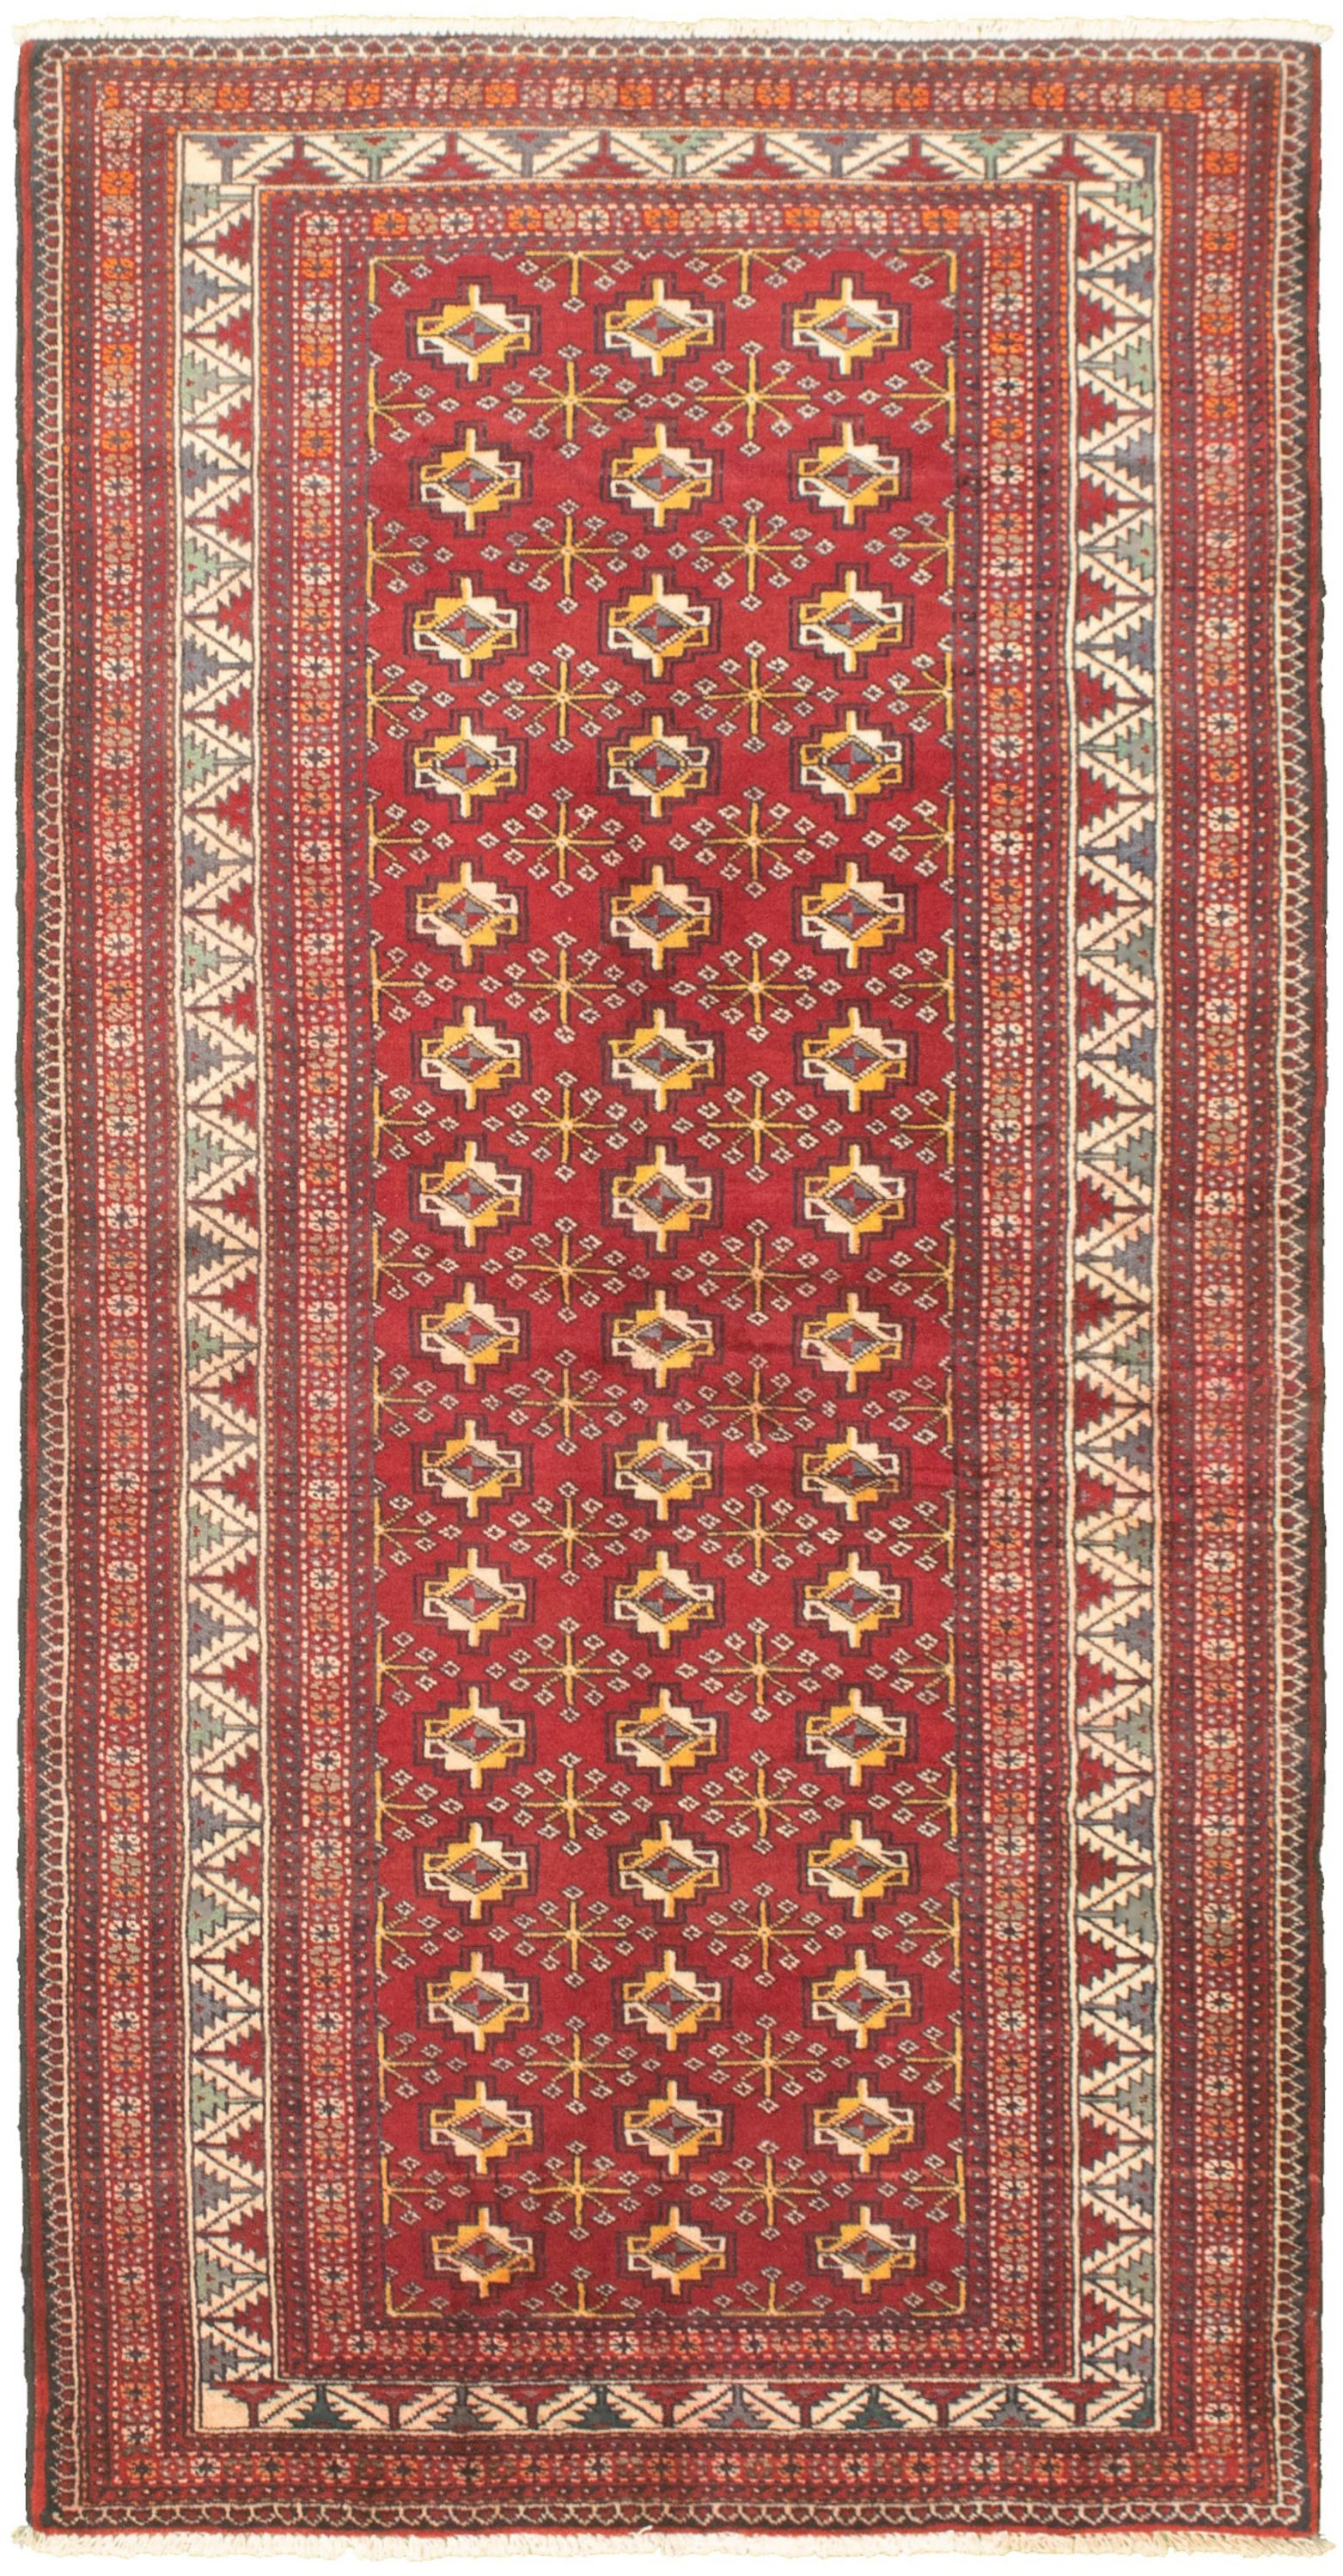 "Hand-knotted Shiravan Bokhara Red Wool Rug 3'7"" x 7'1"" Size: 3'7"" x 7'1"""